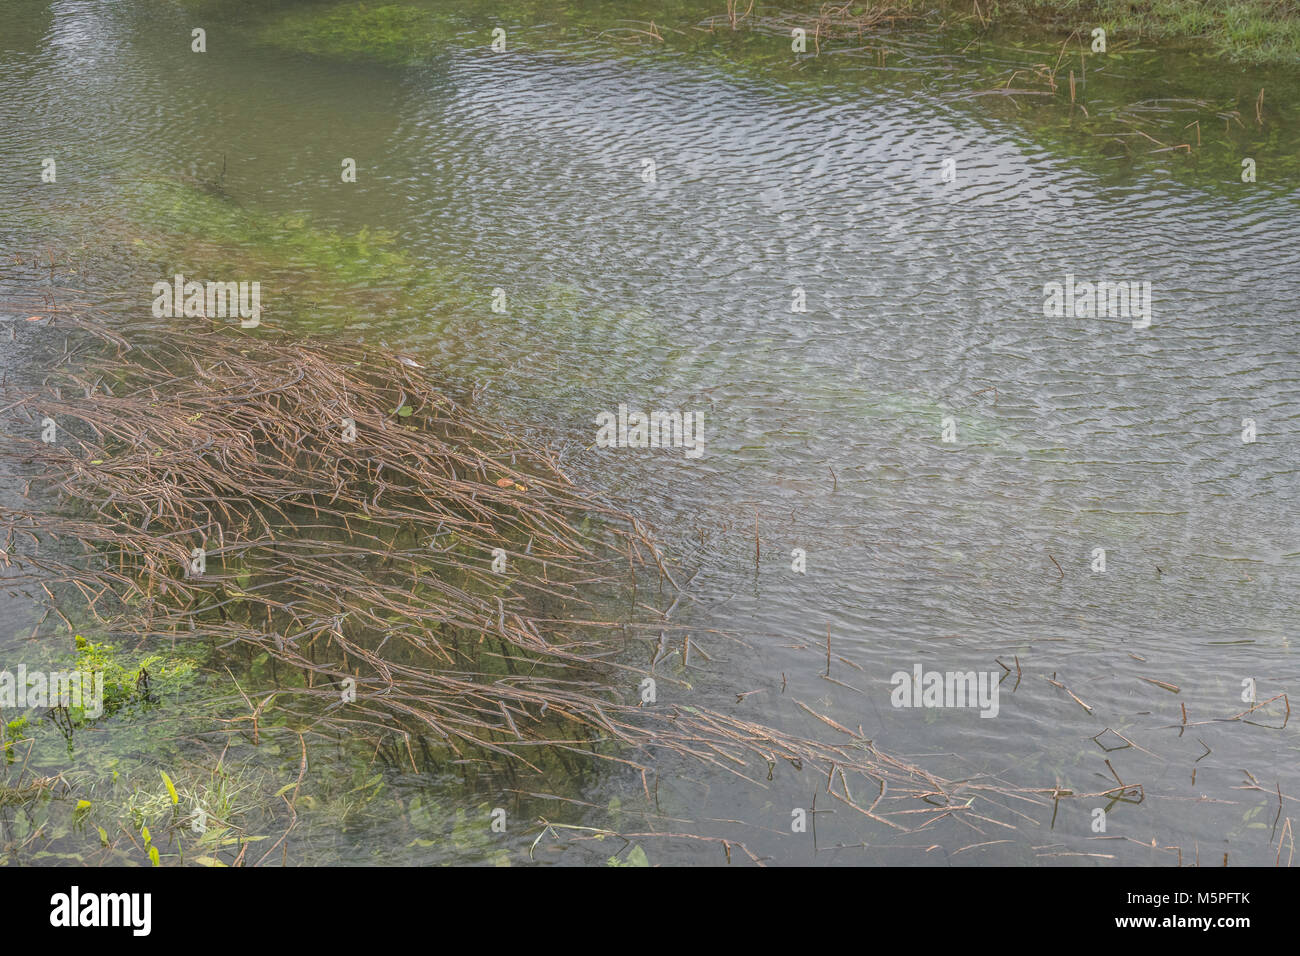 Sky reflected in breeze rippled water of a waterway. - Stock Image